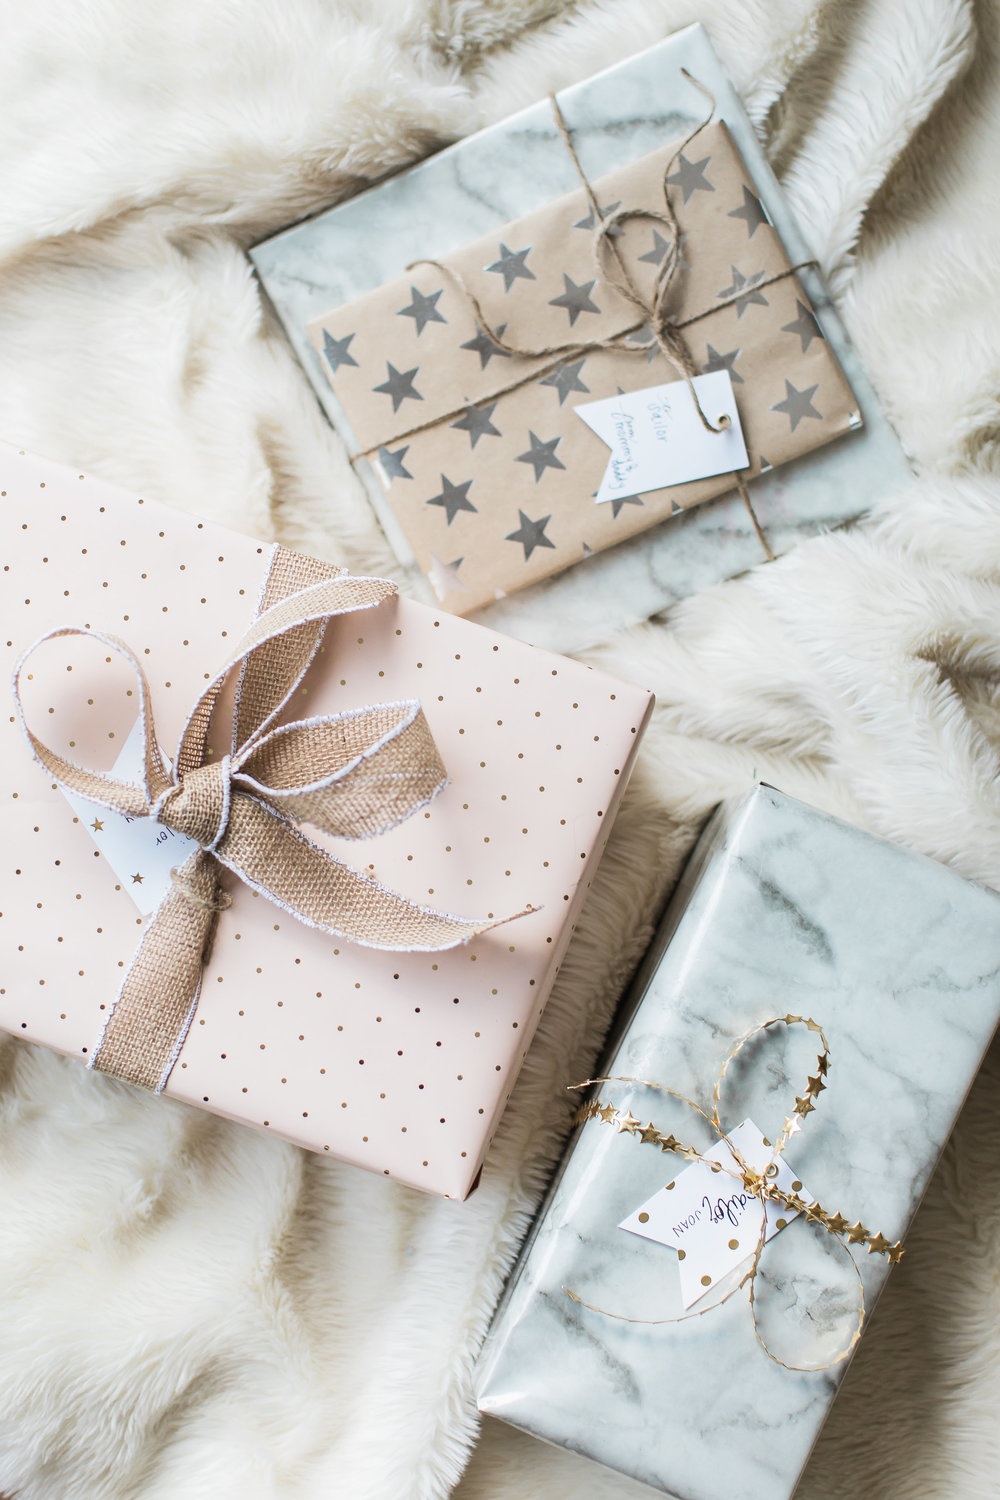 The Life Styled Wrapped Gifts